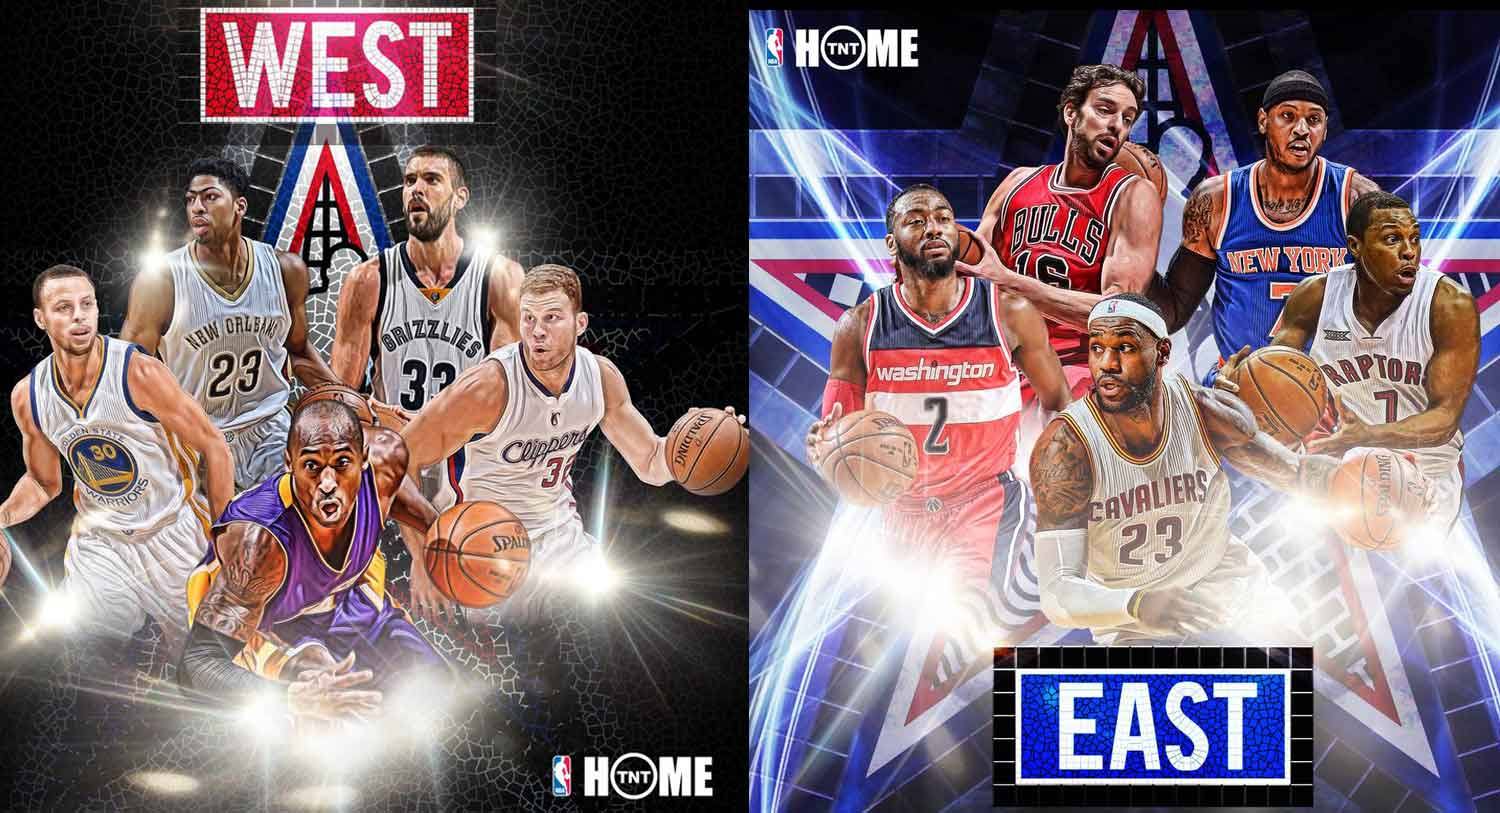 nba all star game 2015 teams chosen west east conference images